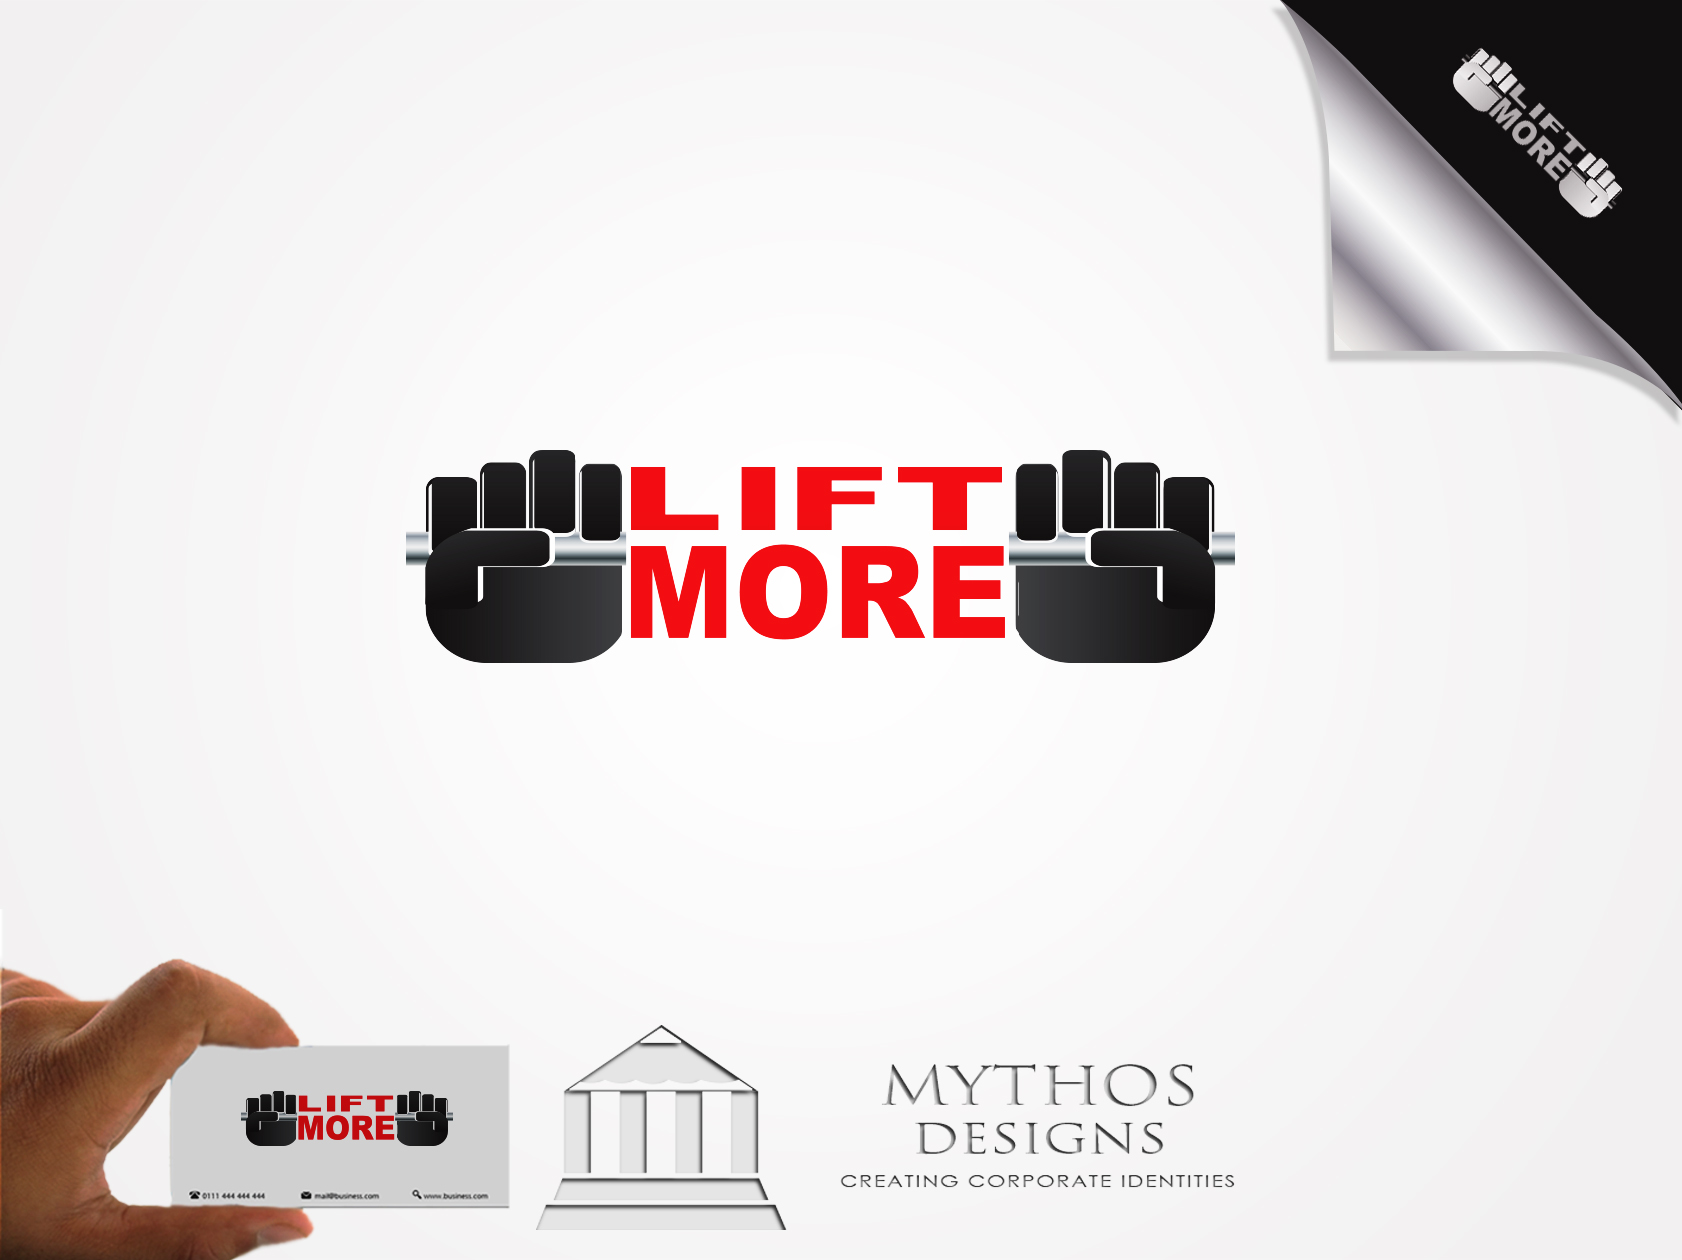 Logo Design by Mythos Designs - Entry No. 68 in the Logo Design Contest Unique Logo Design Wanted for Liftmore.